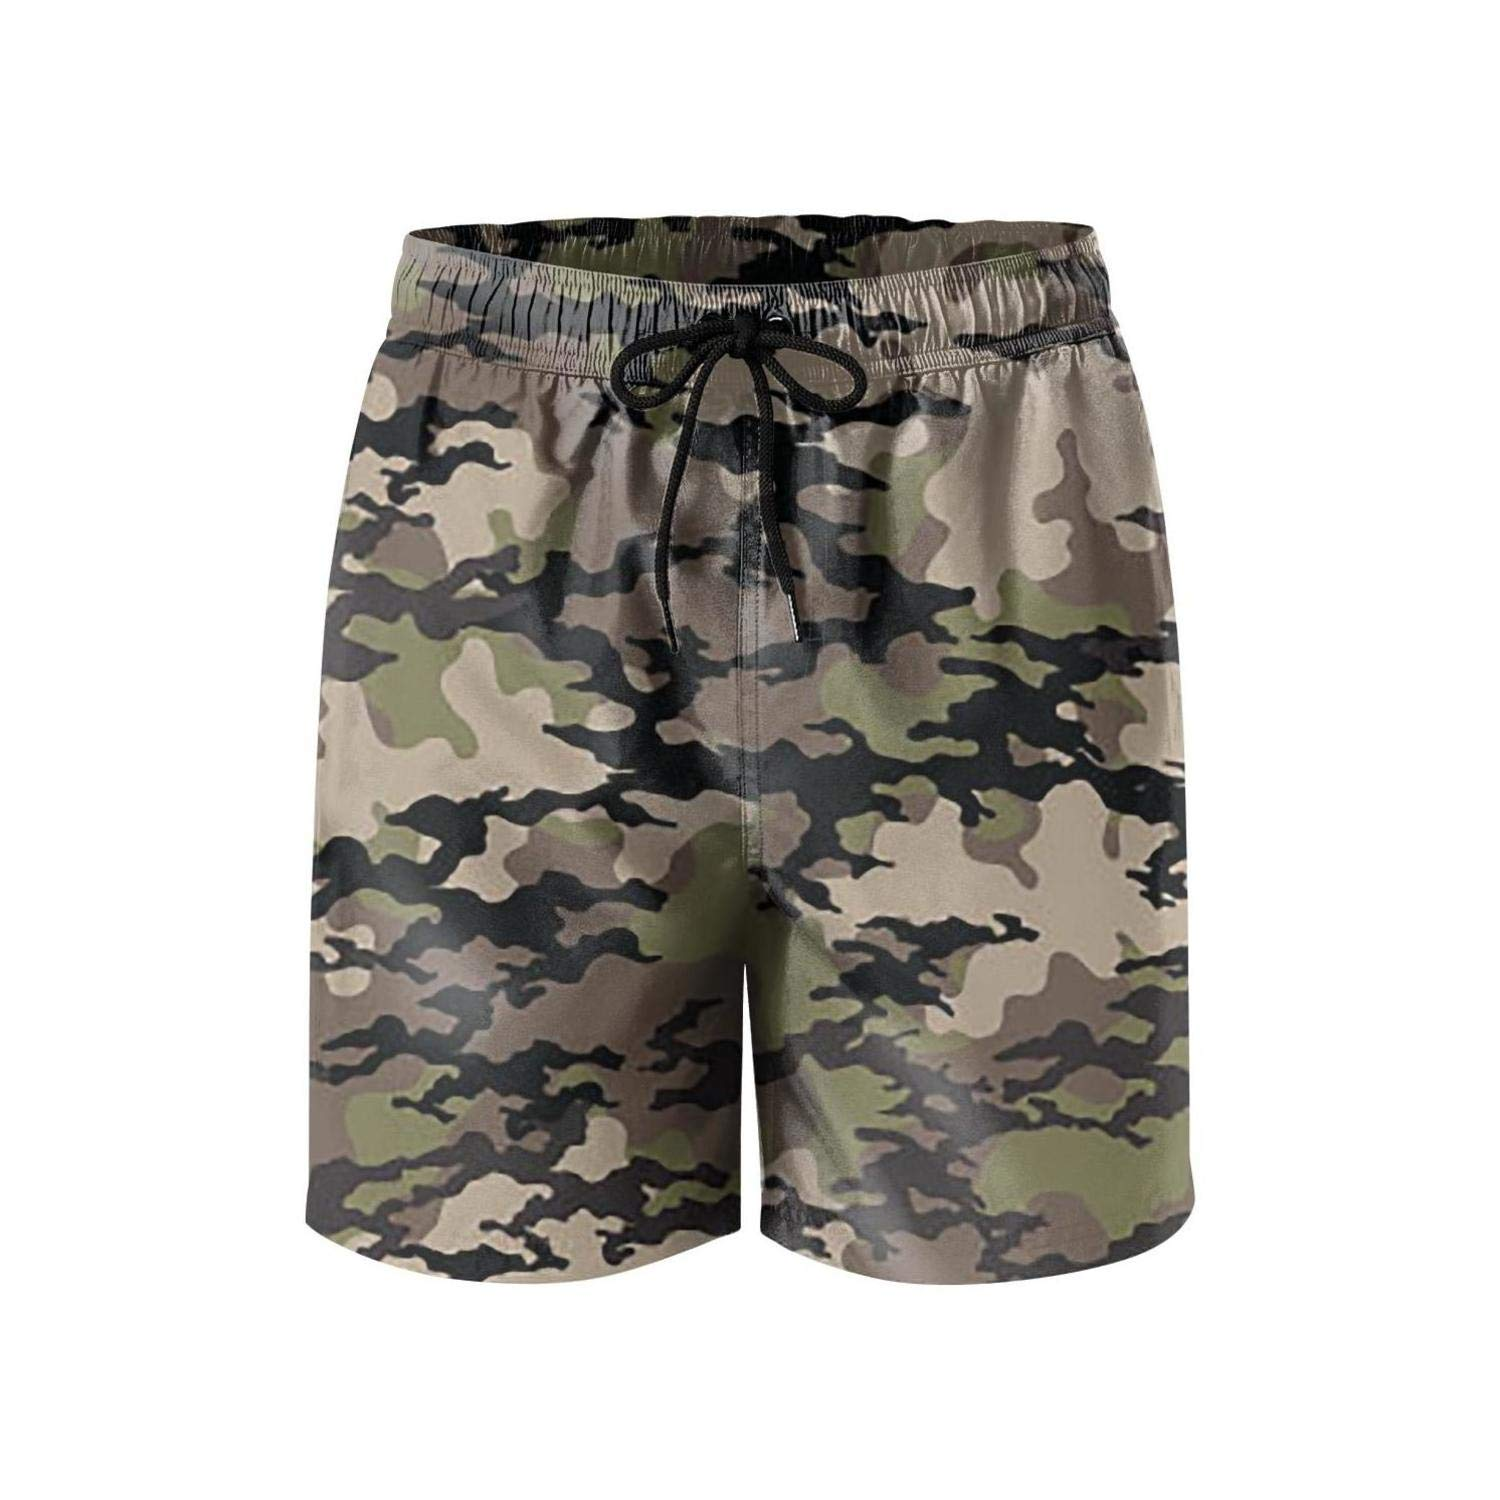 Feewearior Mens Beach Shorts Army Fashionable Camouflage Swimming Trunks Beach Pants